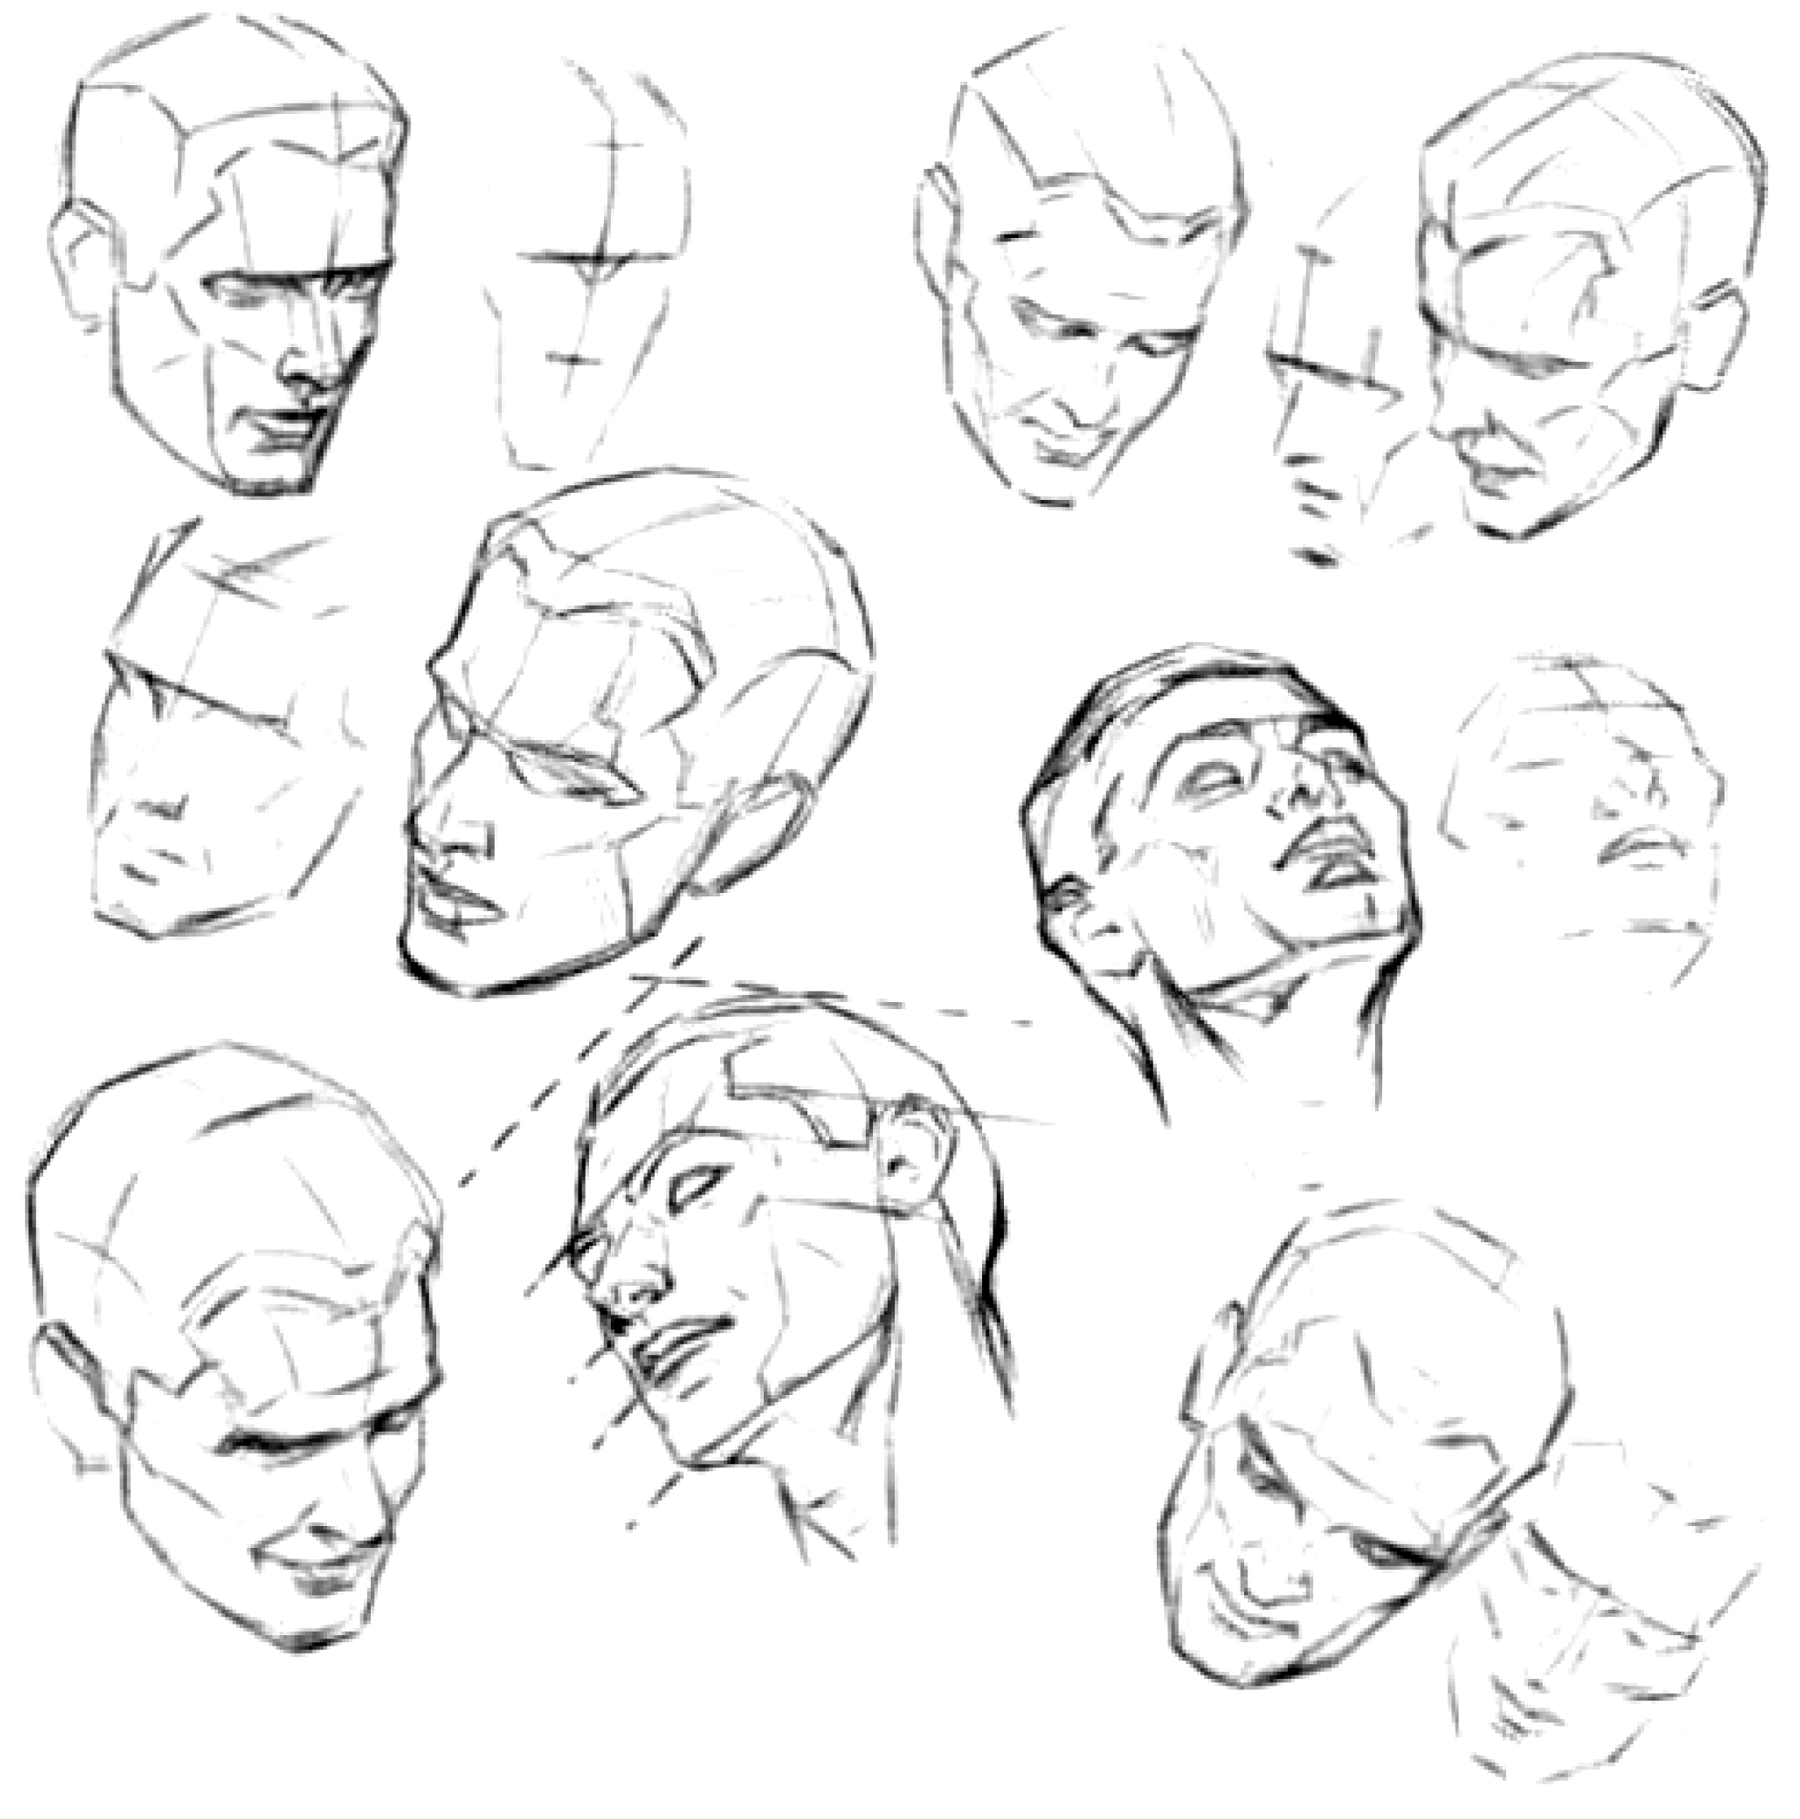 How To Draw The Face And Head In Perspective To Keep Correct